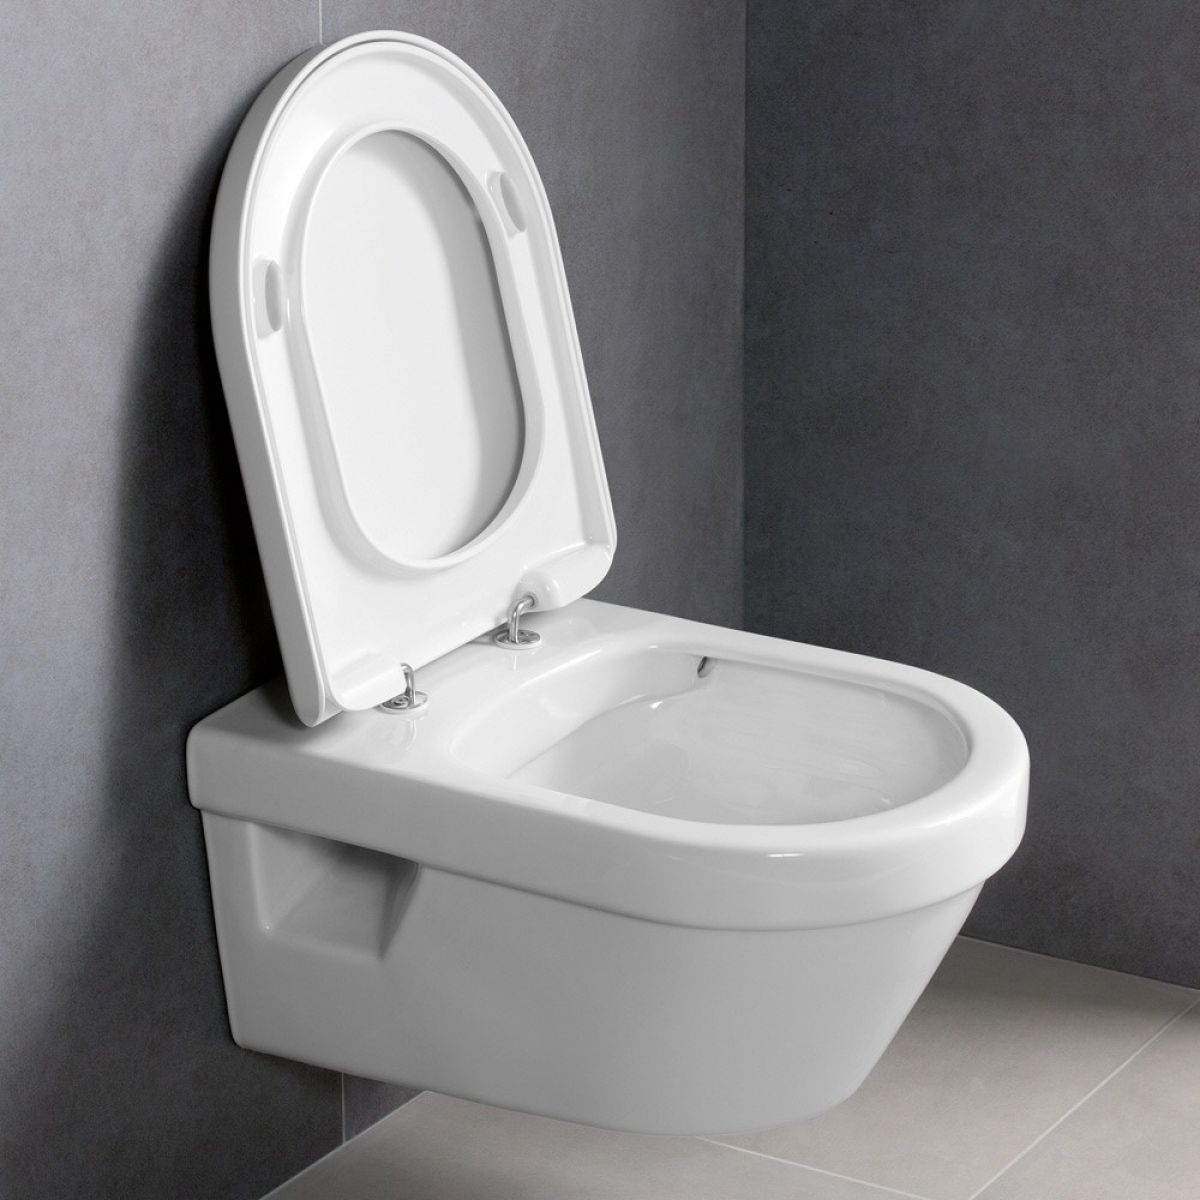 villeroy boch architectura wall hung toilet uk bathrooms. Black Bedroom Furniture Sets. Home Design Ideas